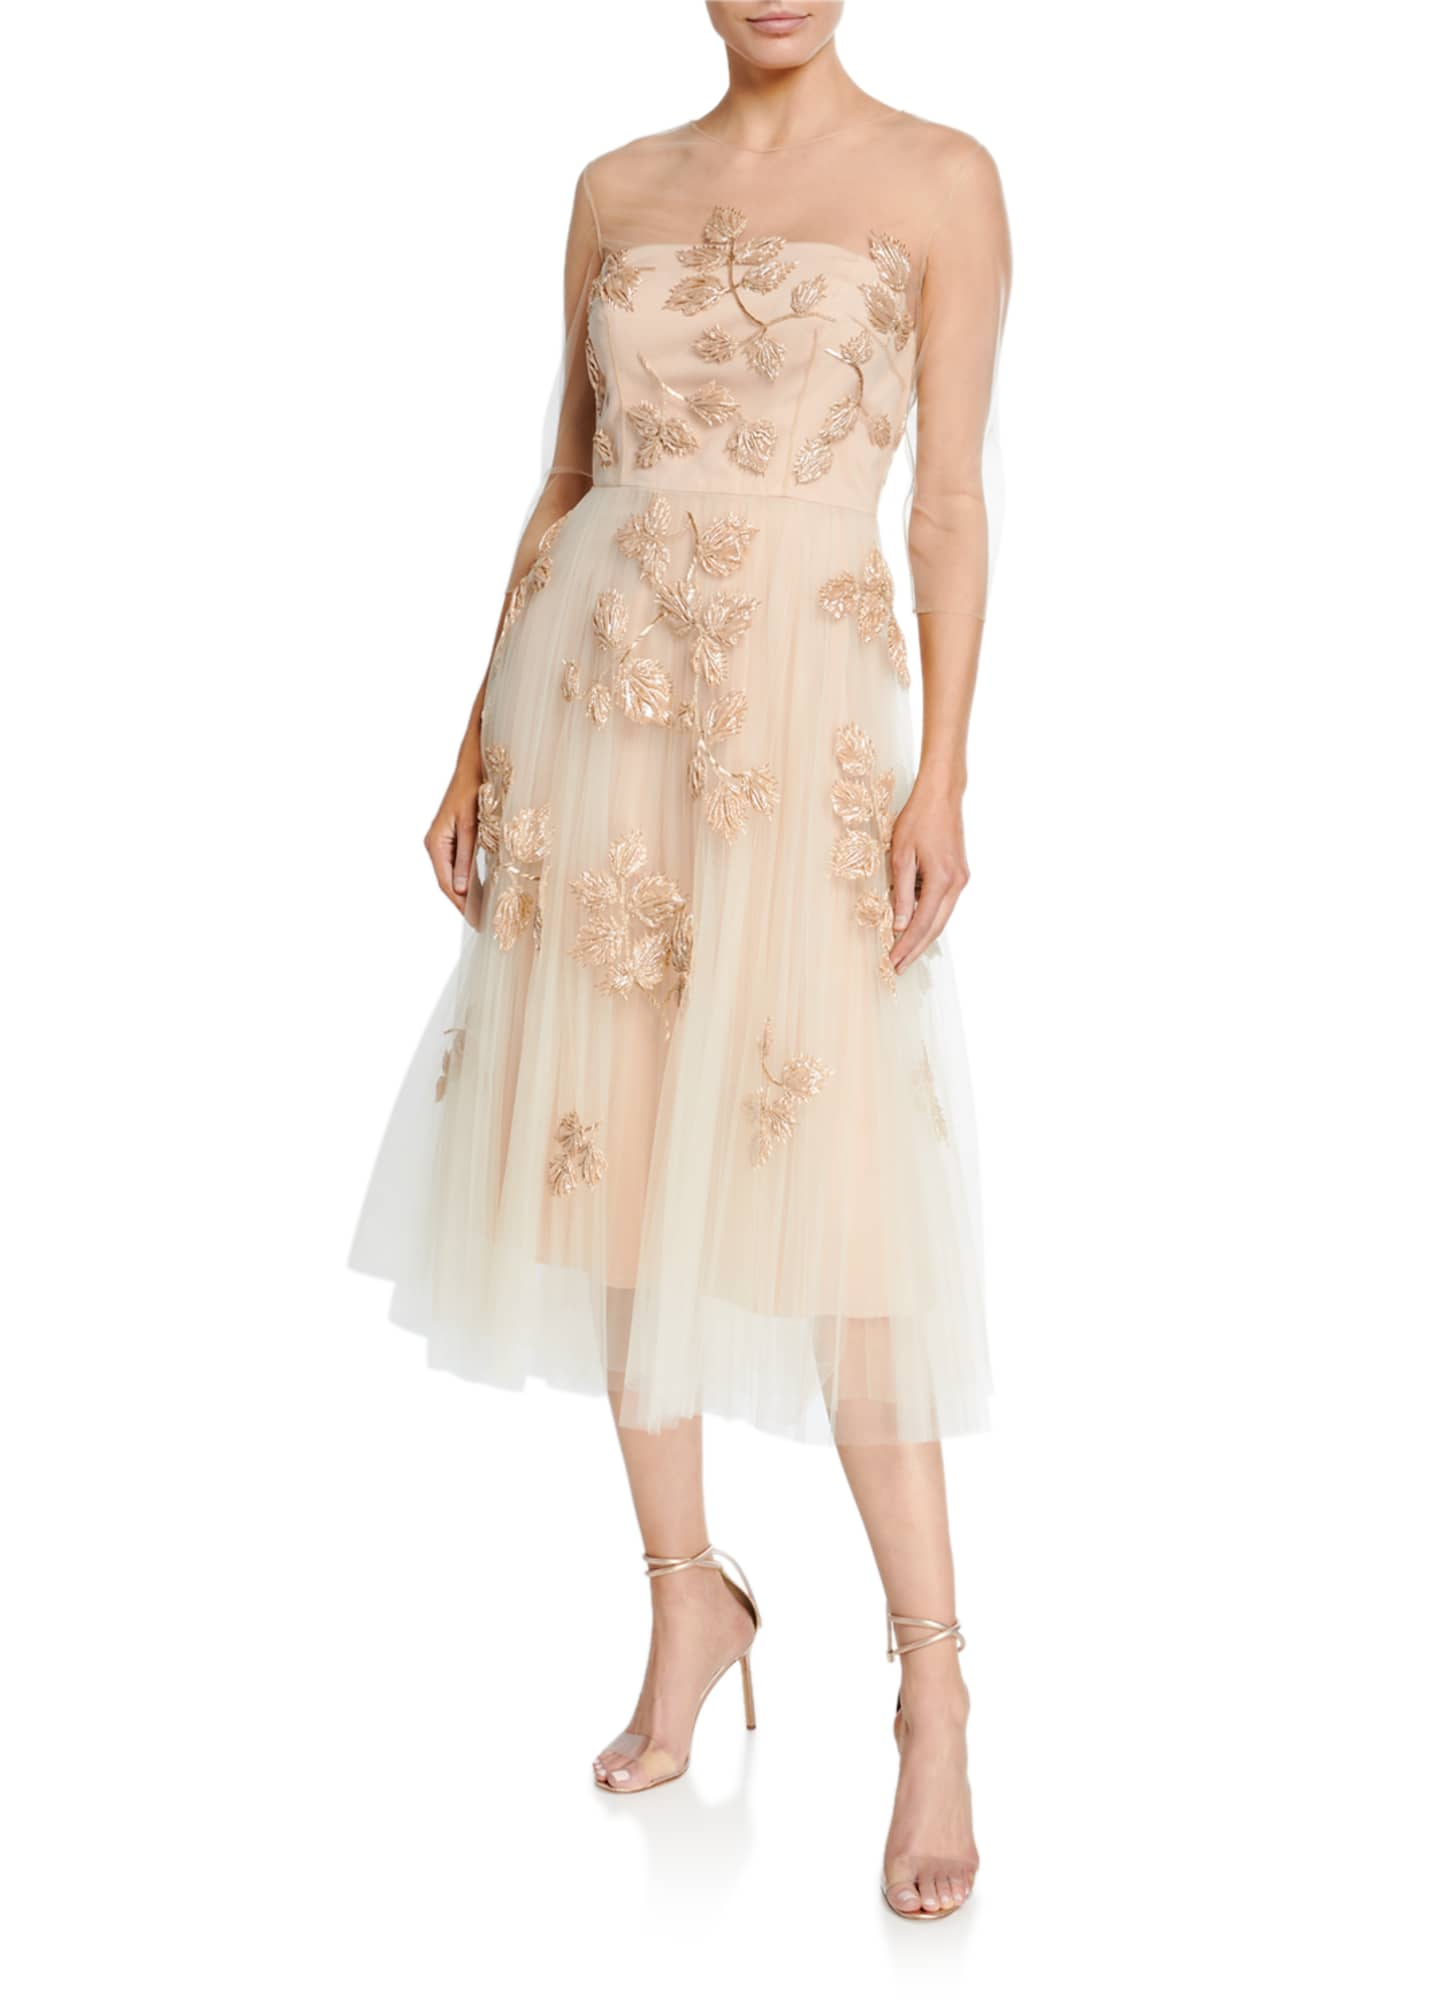 Carolina Herrera Leaf-Embroidered Tulle Illusion Dress